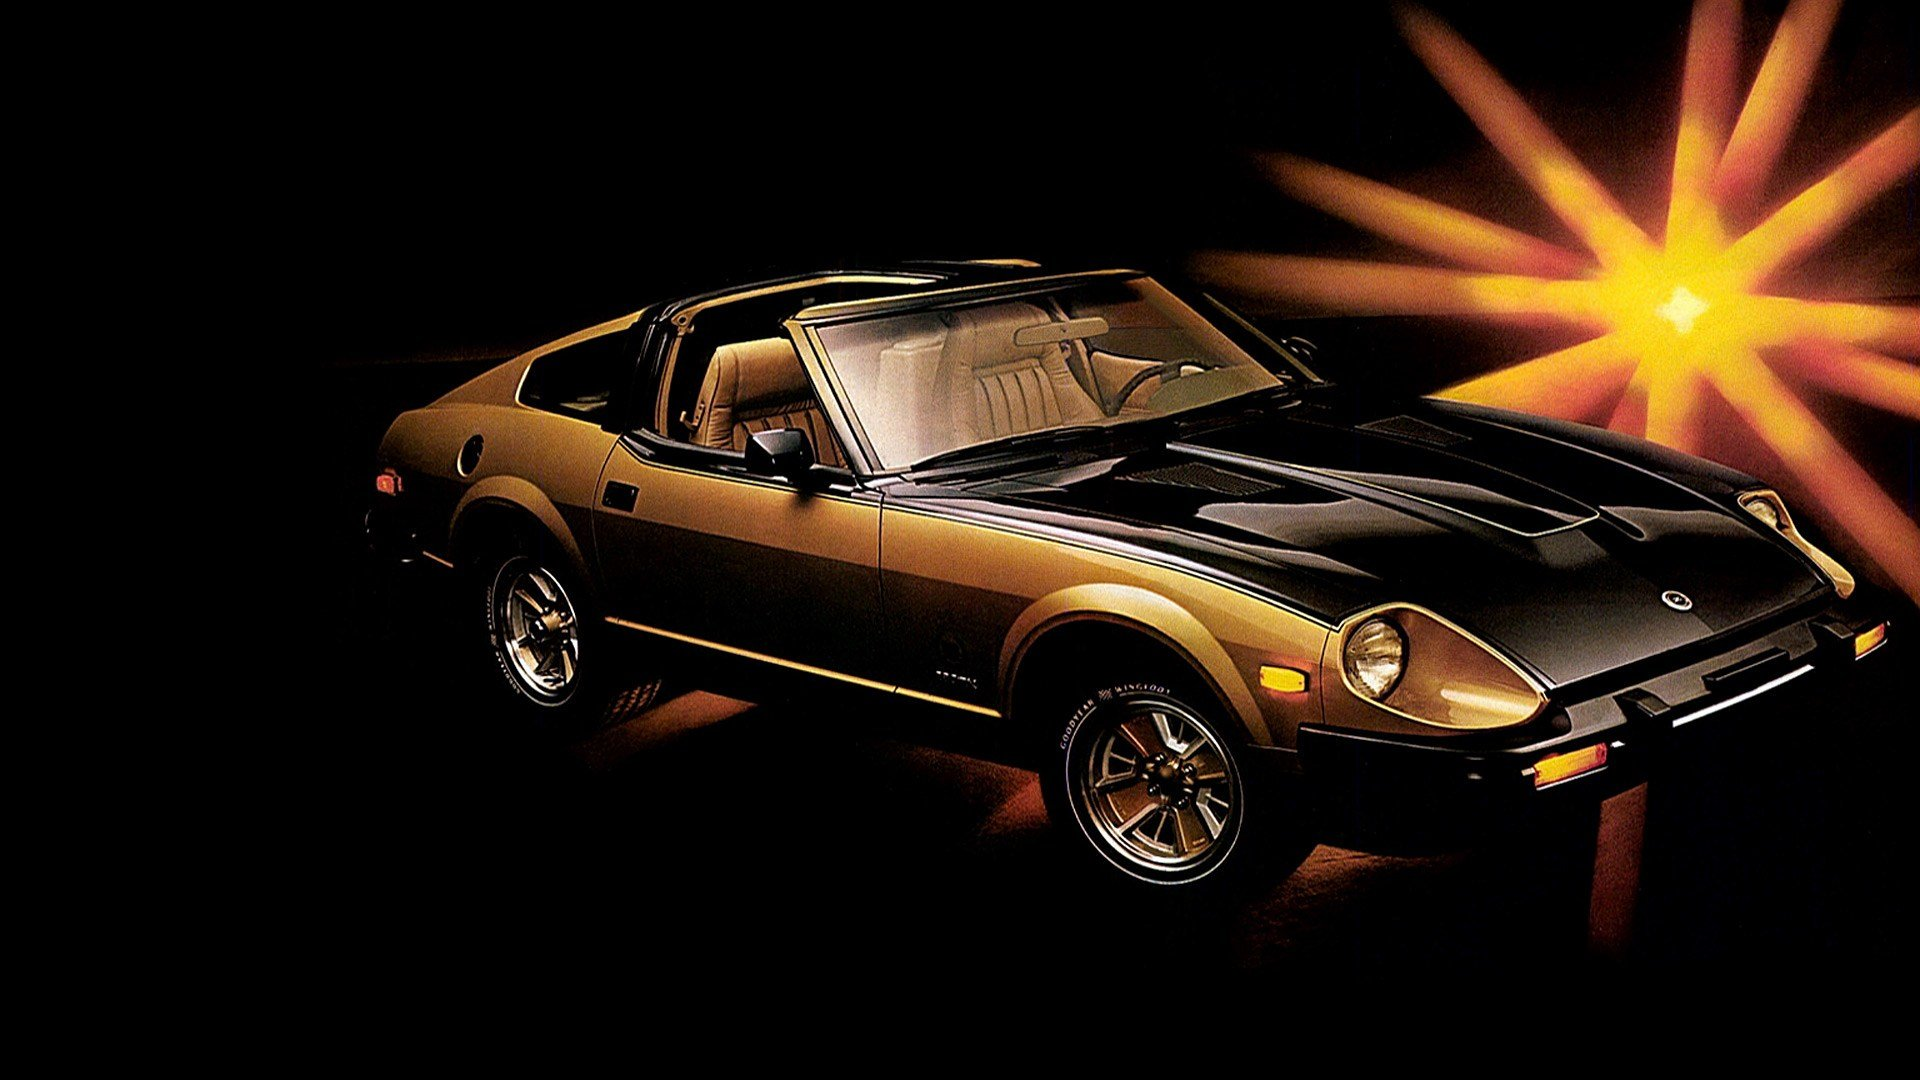 Latest 1980 Nissan 280Zx Wallpapers Hd Images Wsupercars Free Download